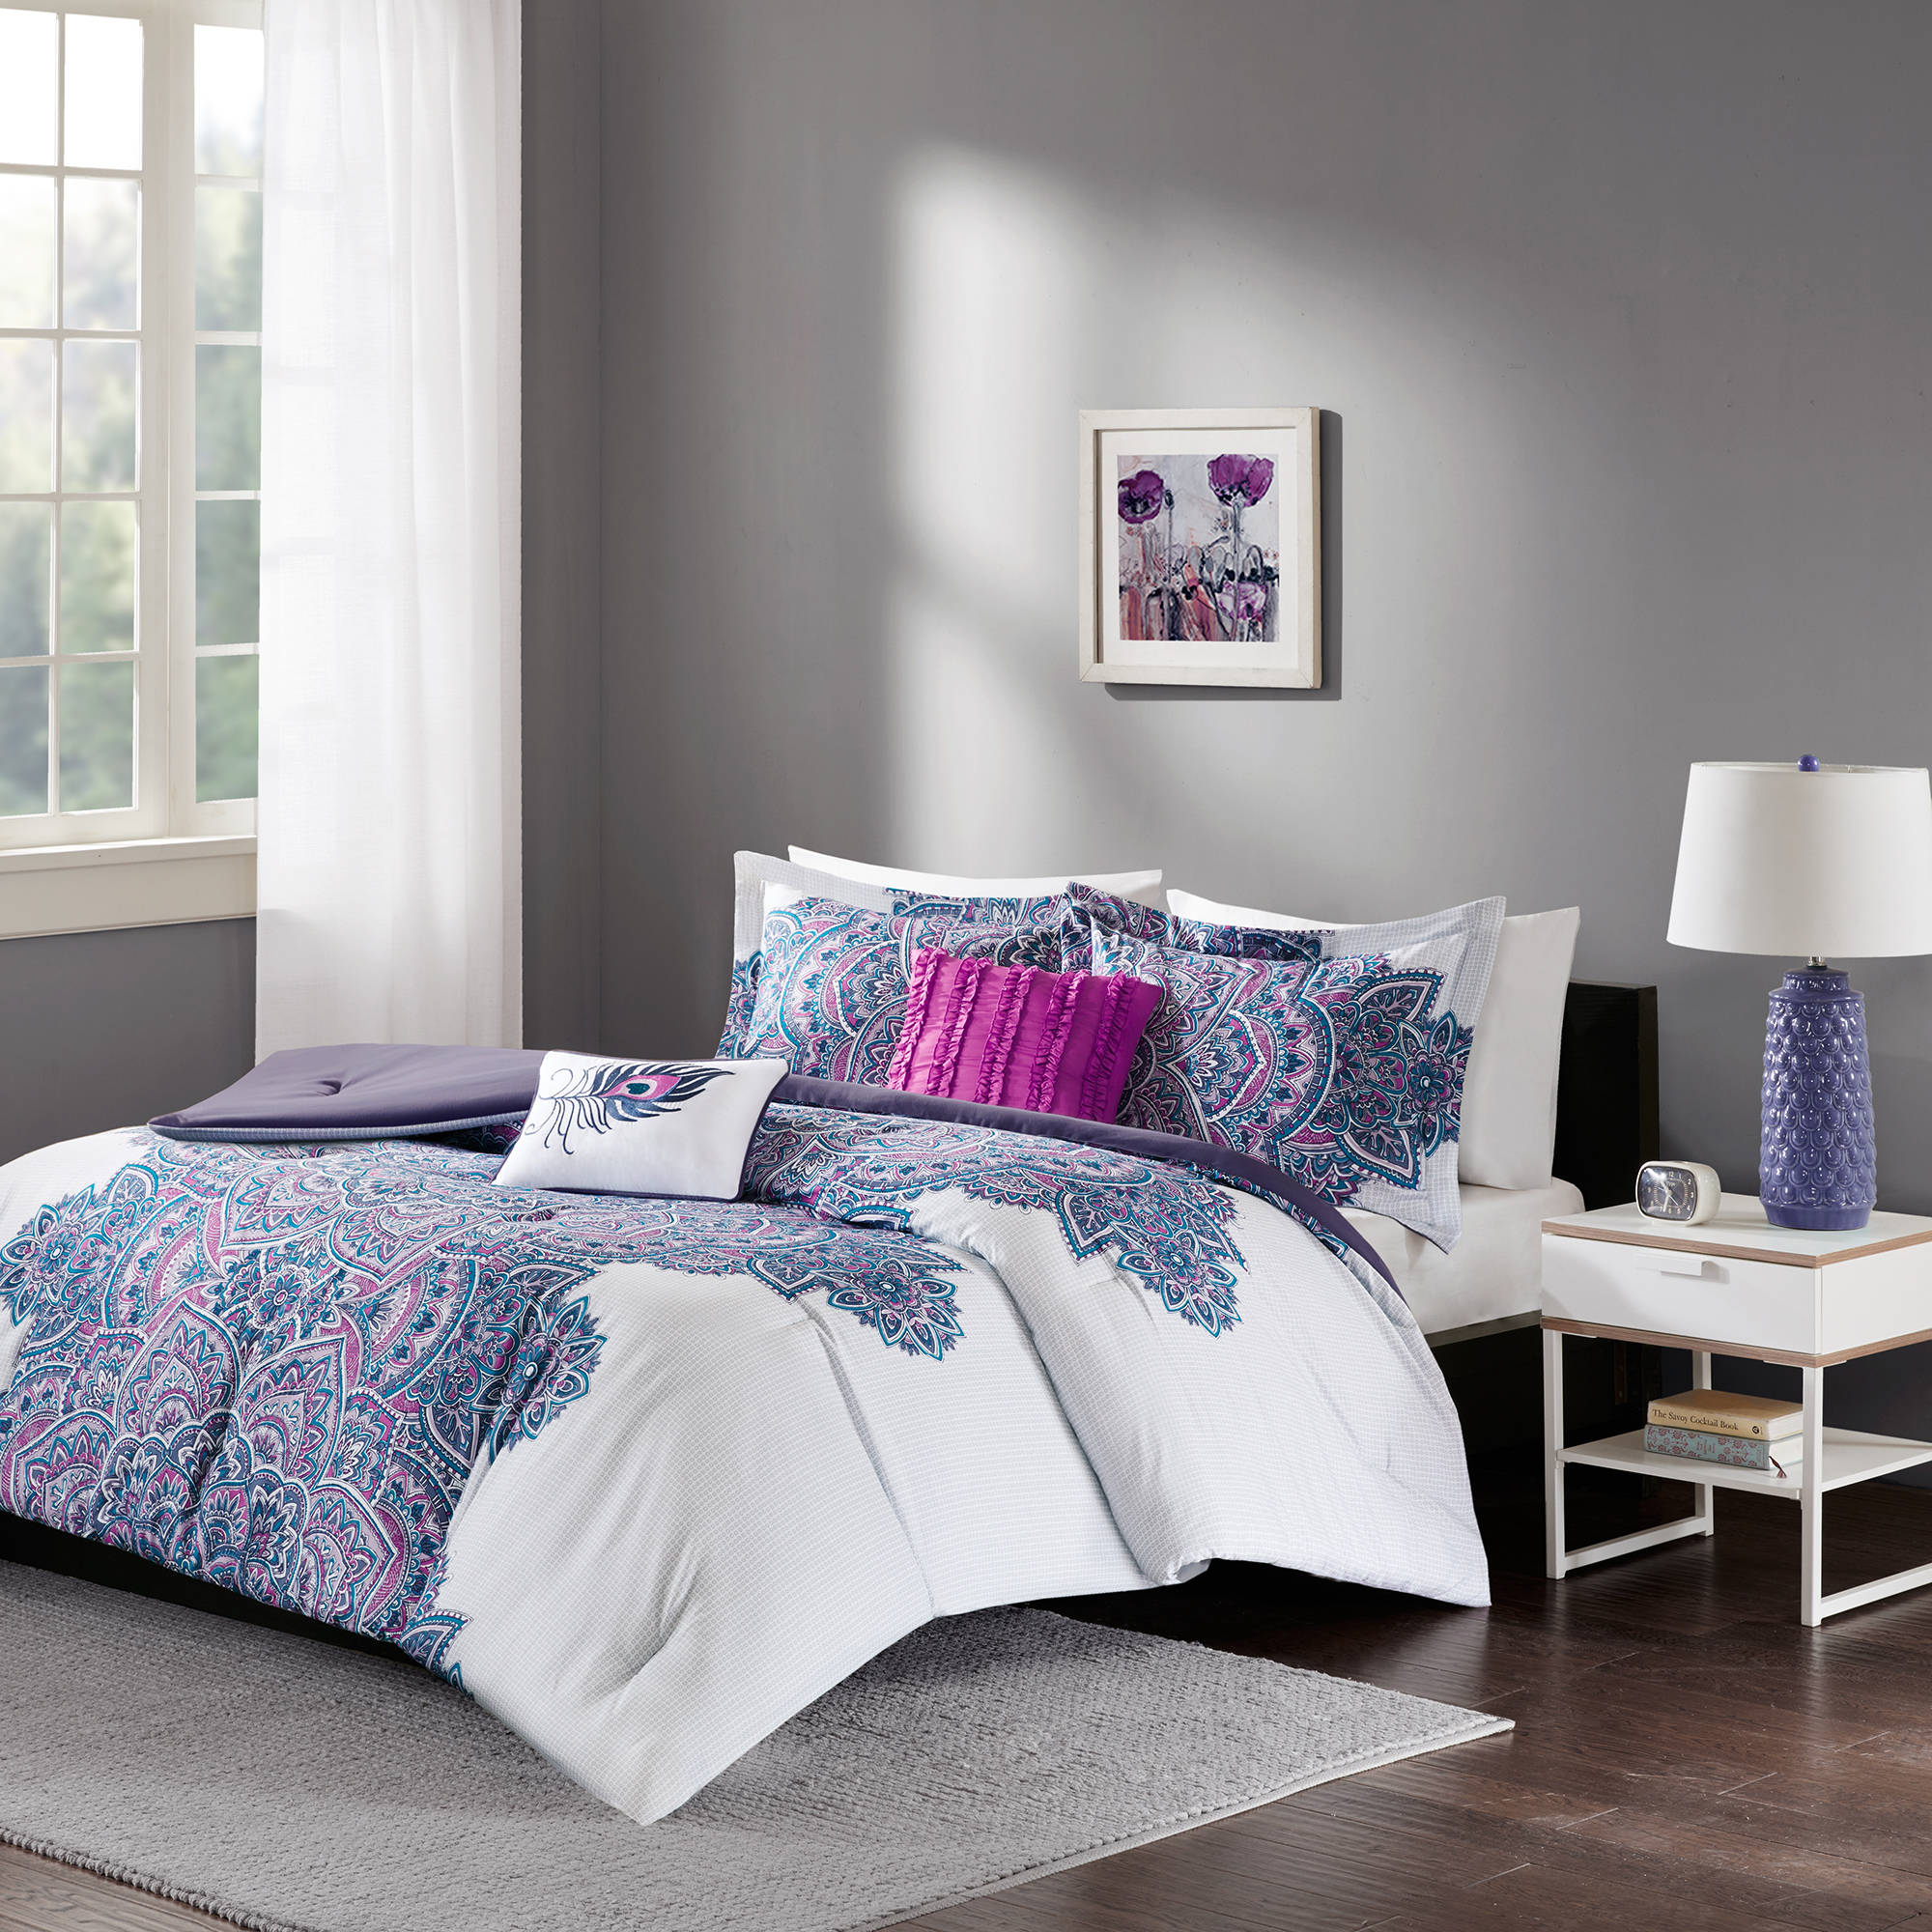 Home Essence Apartment Lolita Bedding Comforter Set